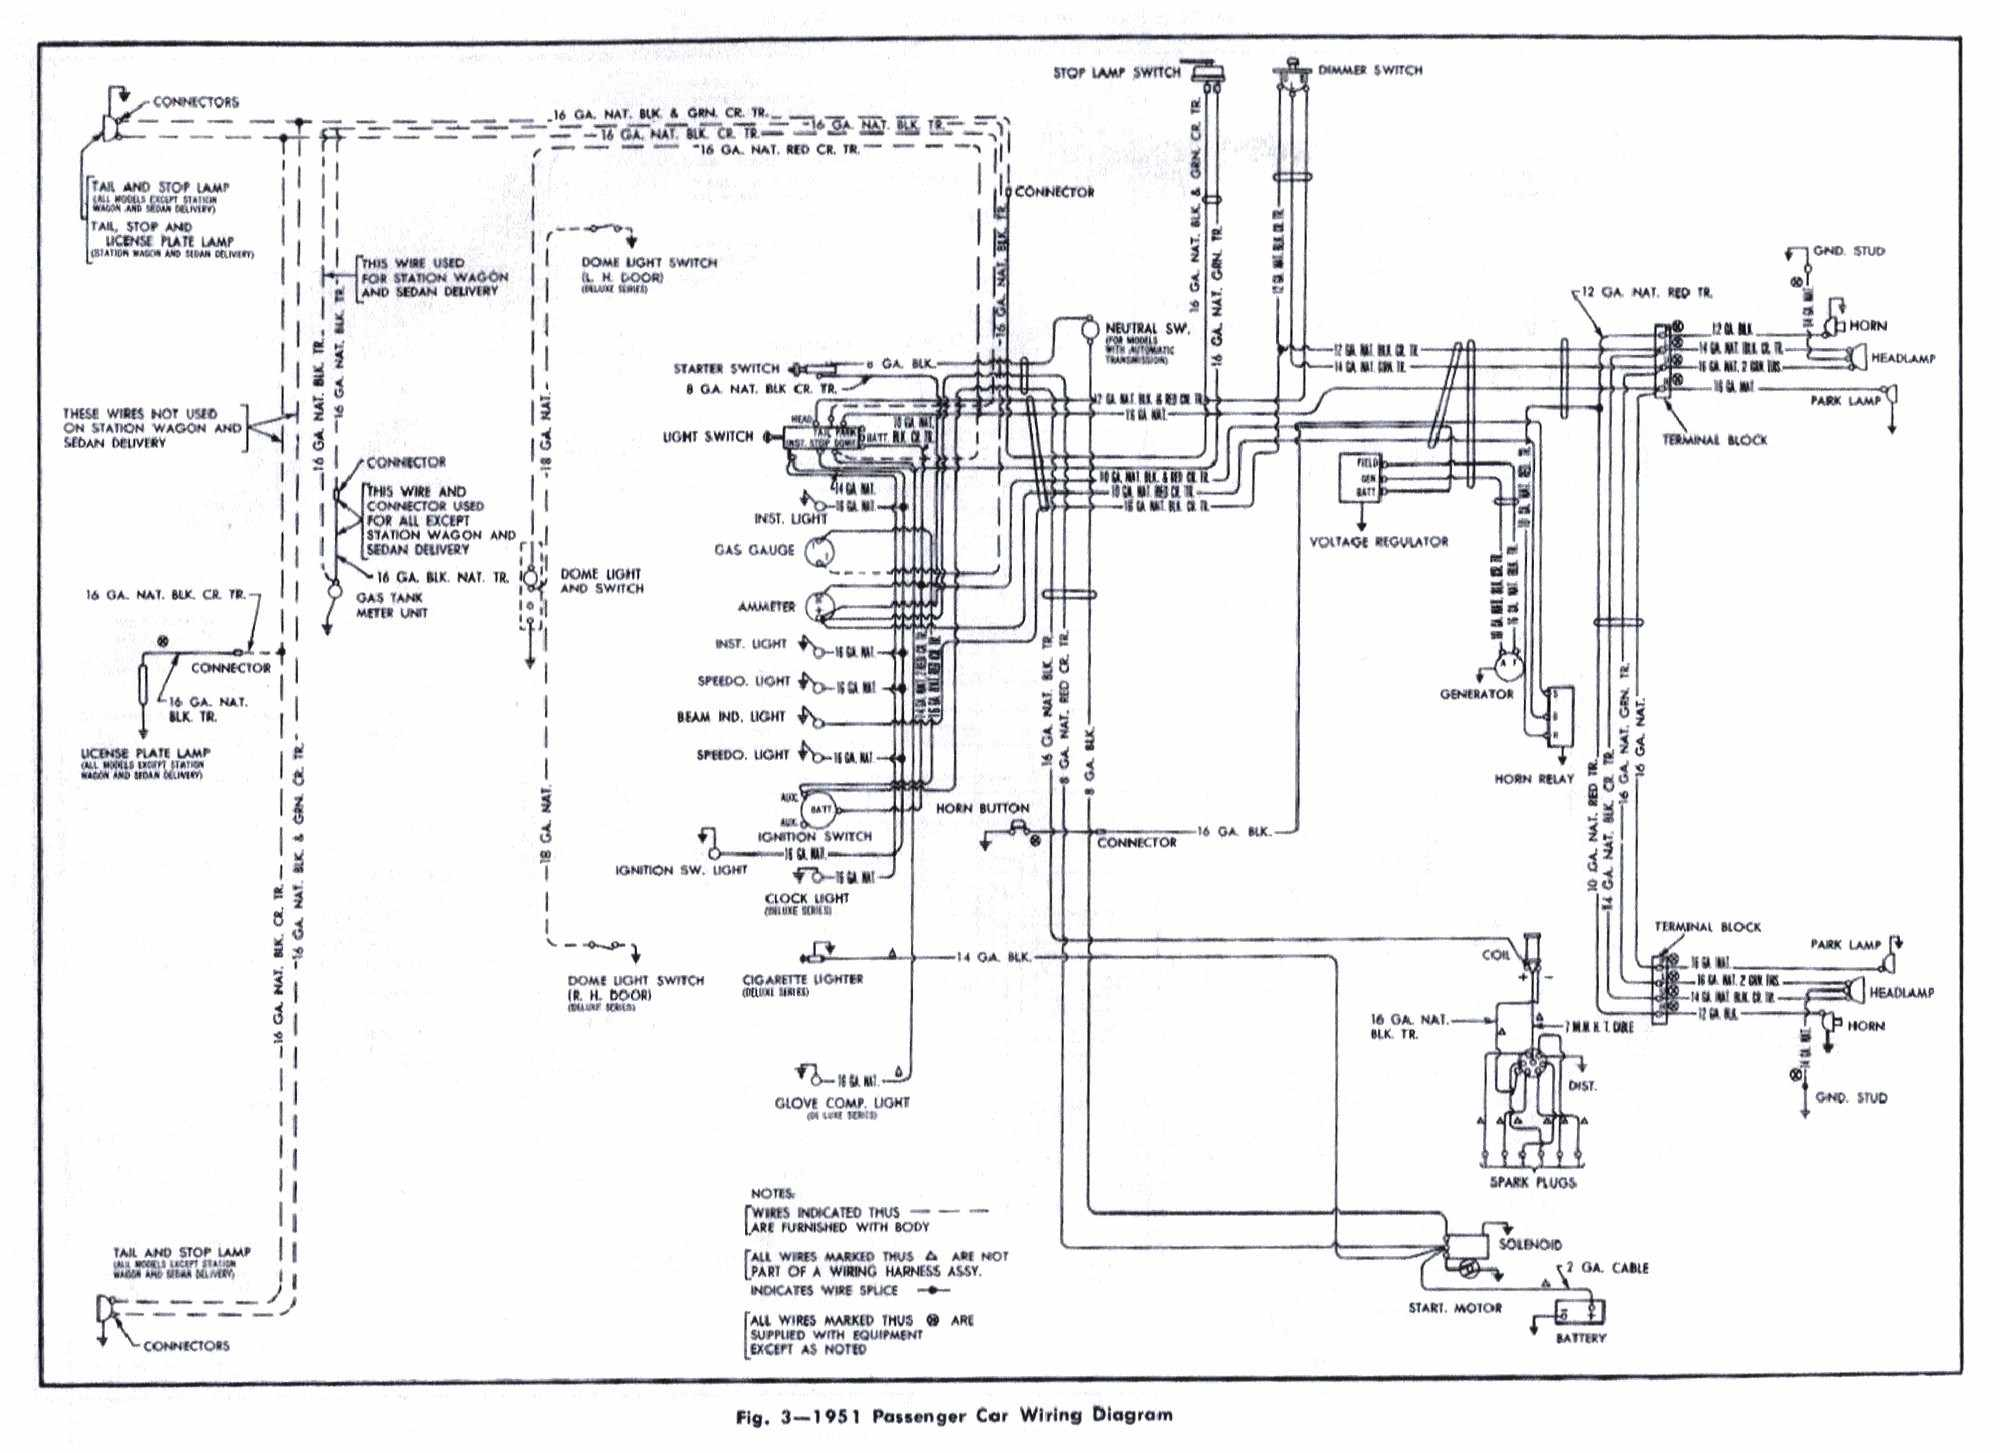 1951 Olds Wiring Diagram Will Be A Thing 3 Way Switch Diagrams Air Conditioning 1968 442 Imageresizertool Com Hvac